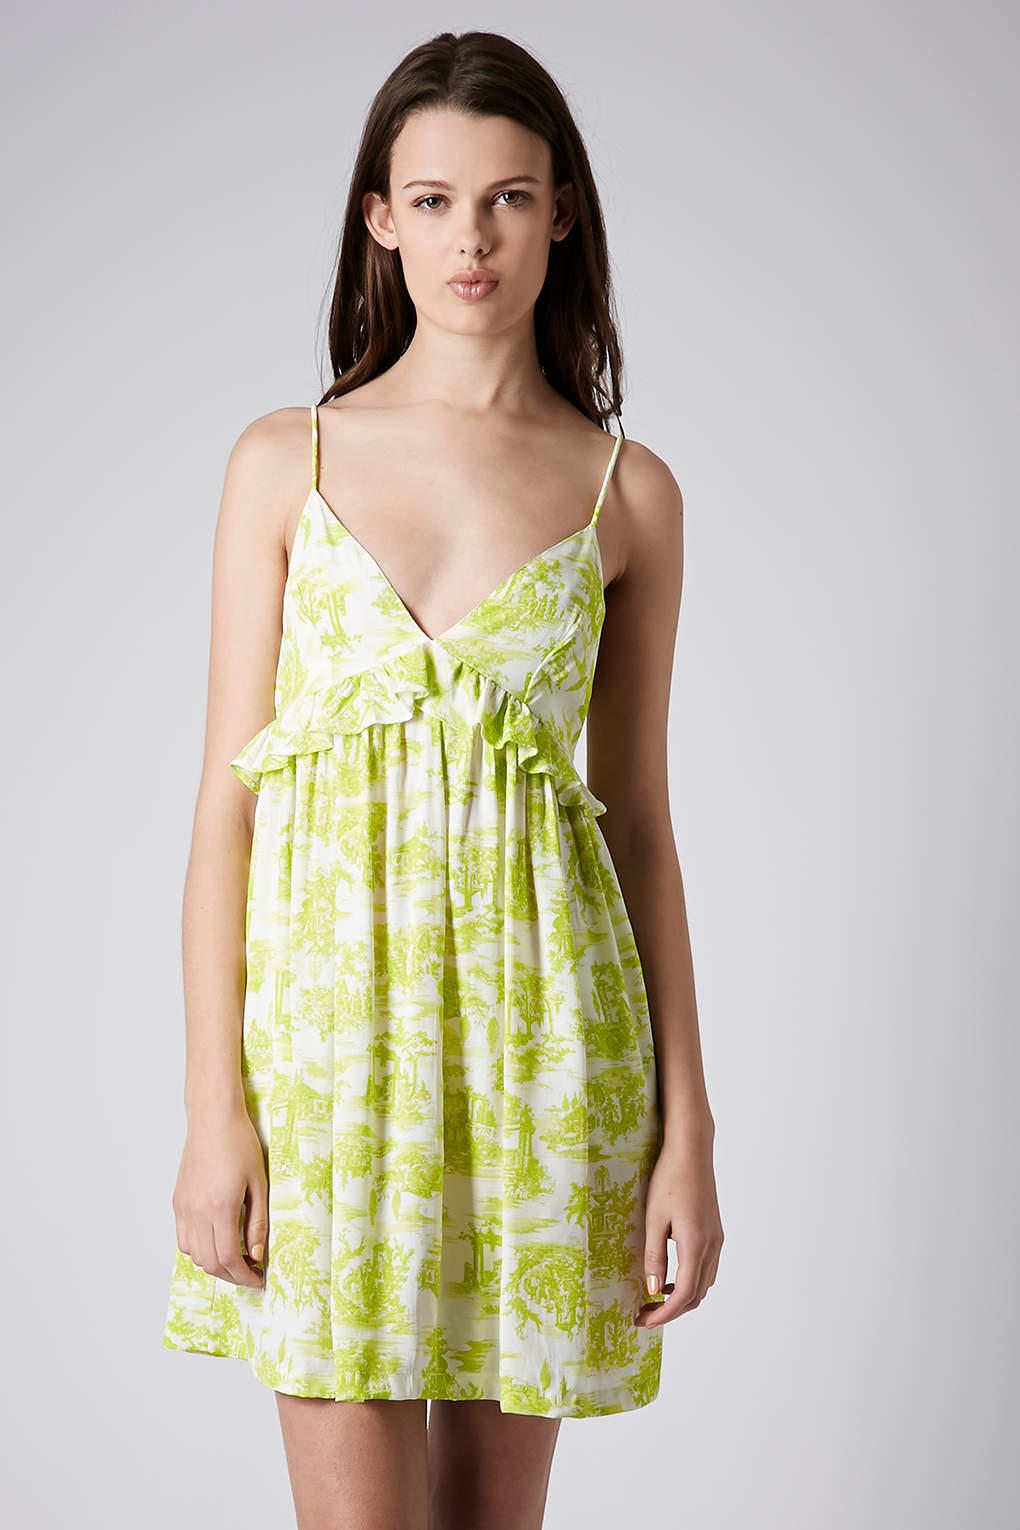 ac61fe2531a Lyst - TOPSHOP Toile Print Babydoll Sundress in Green